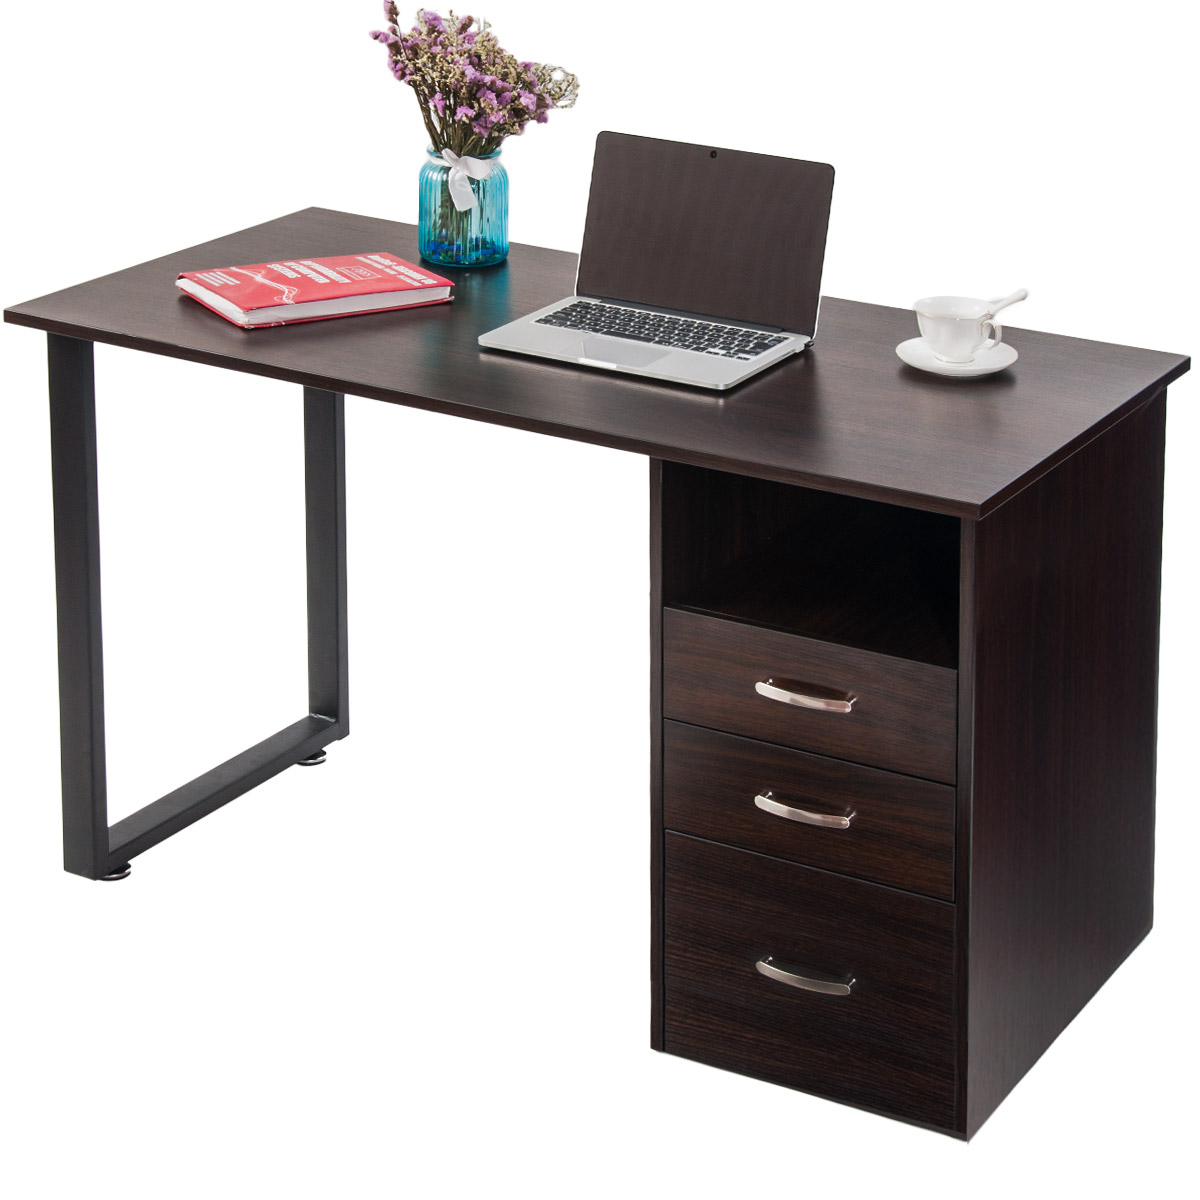 Merax Simple Design Computer Desk with Cabinet and Drawers,Espresso